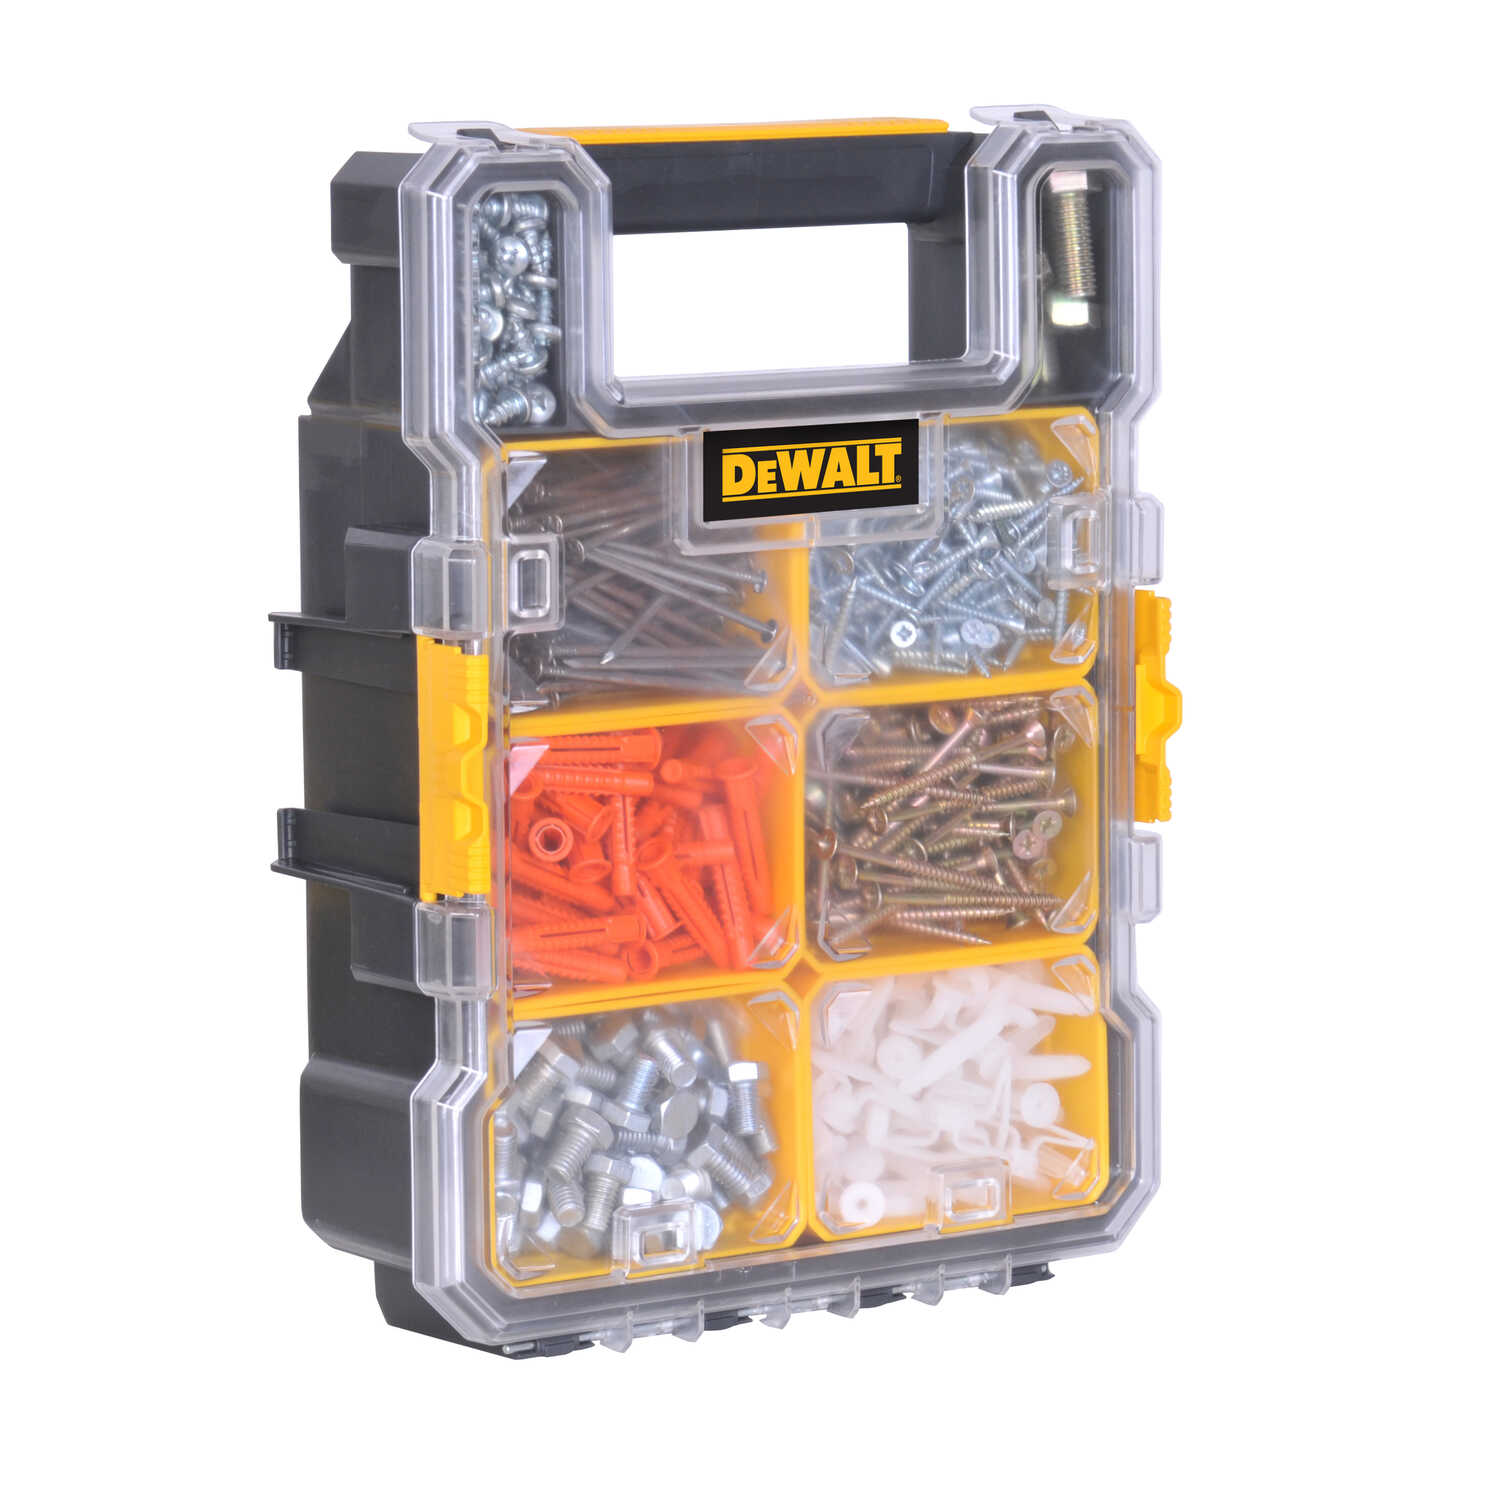 DeWalt  13.845 in. L x 10.179 in. W x 4.368 in. H Storage Organizer  Plastic  8 section Yellow